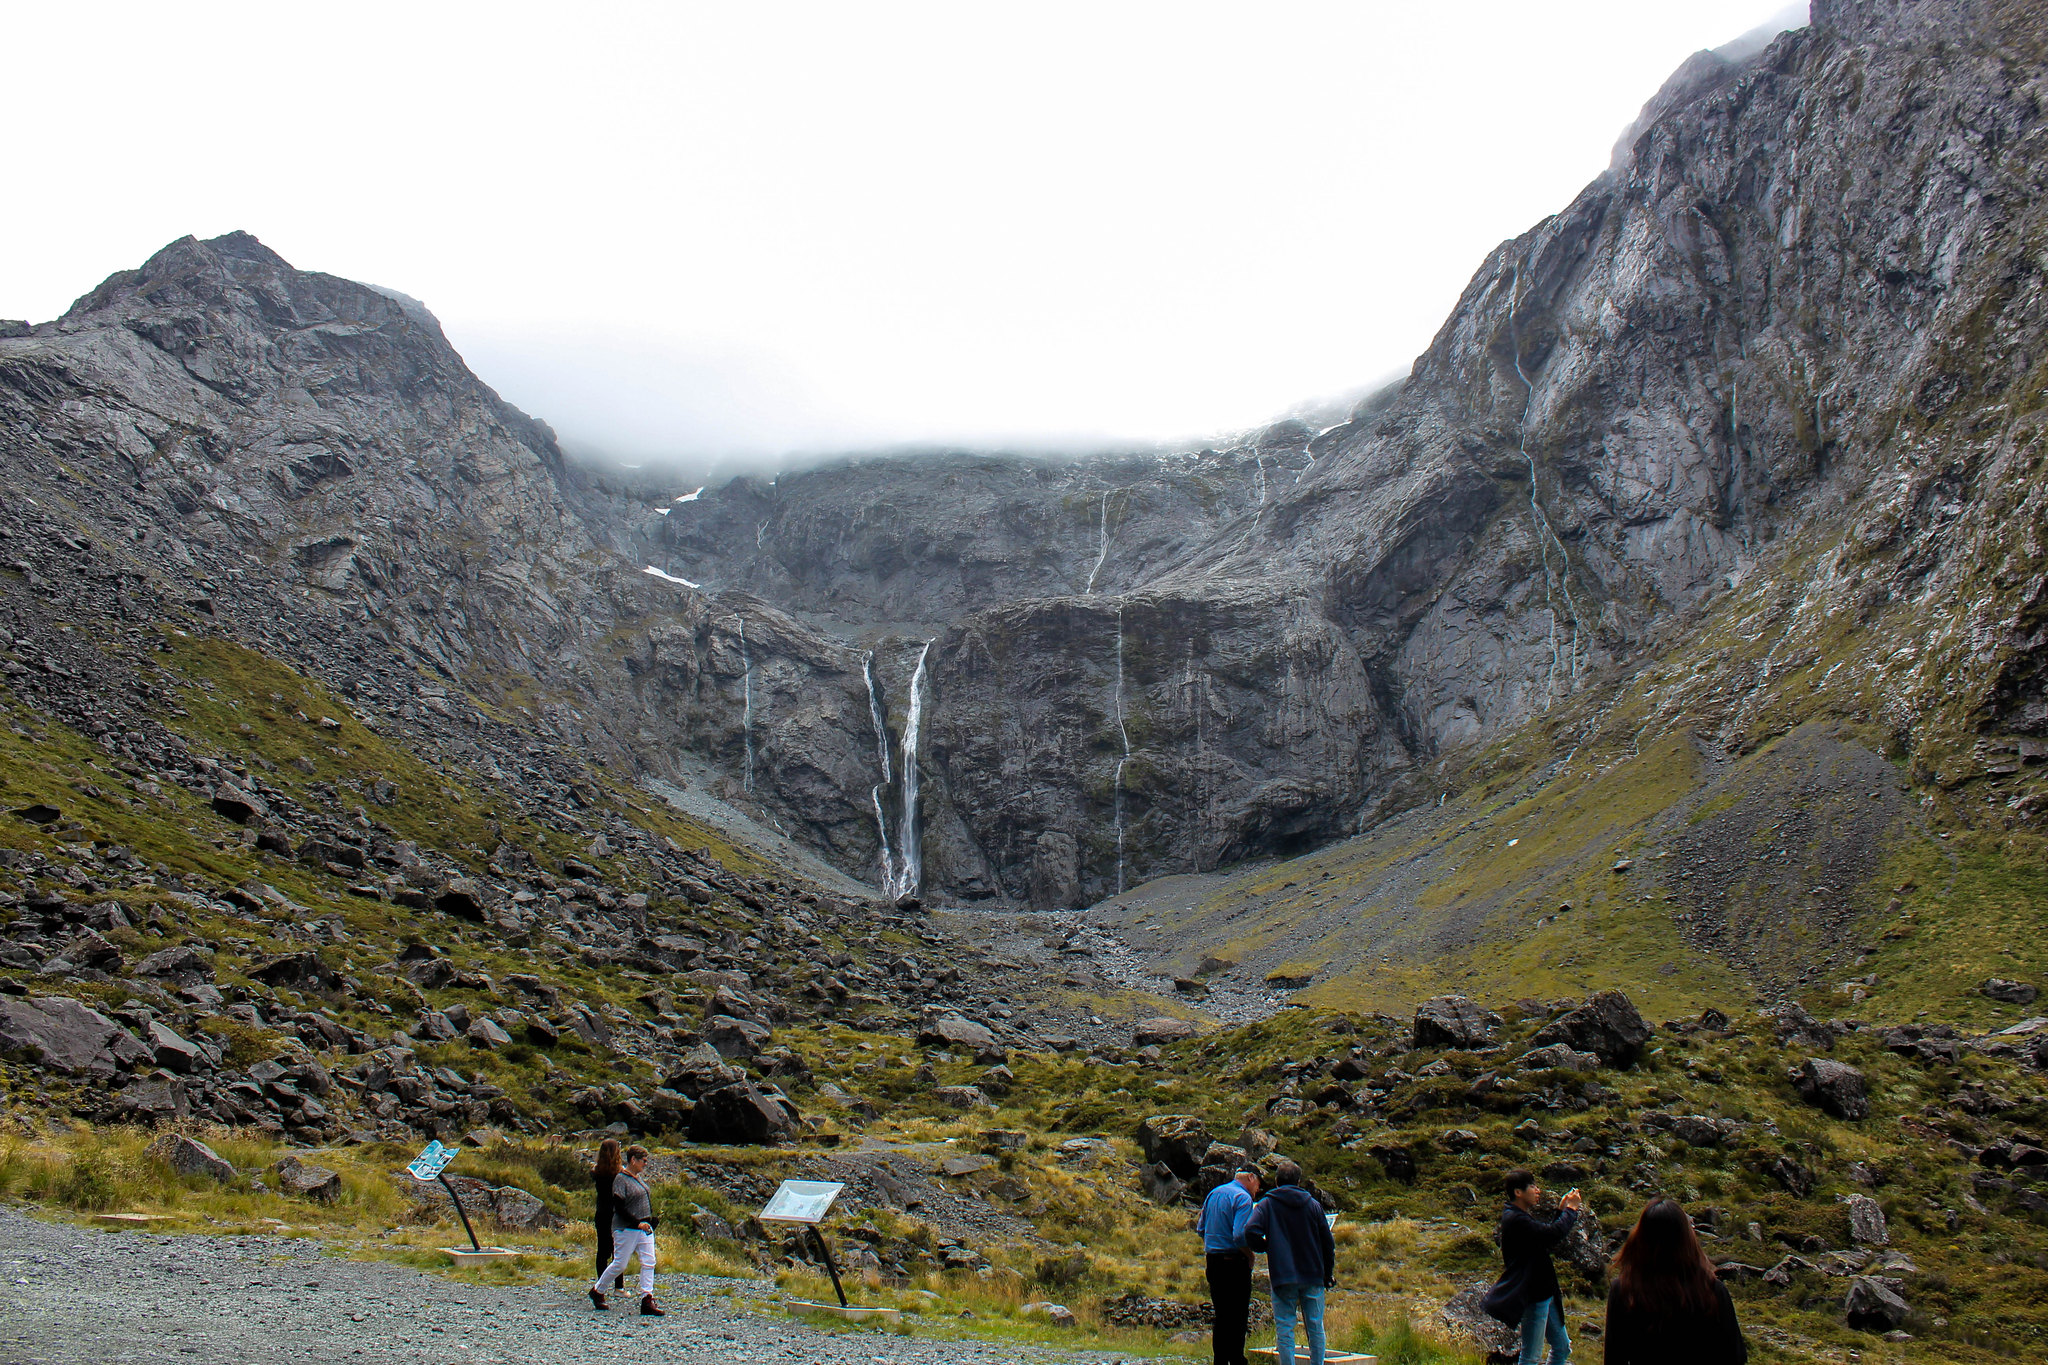 just before Homer Tunnel (drive from Queenstown to Milford Sound)